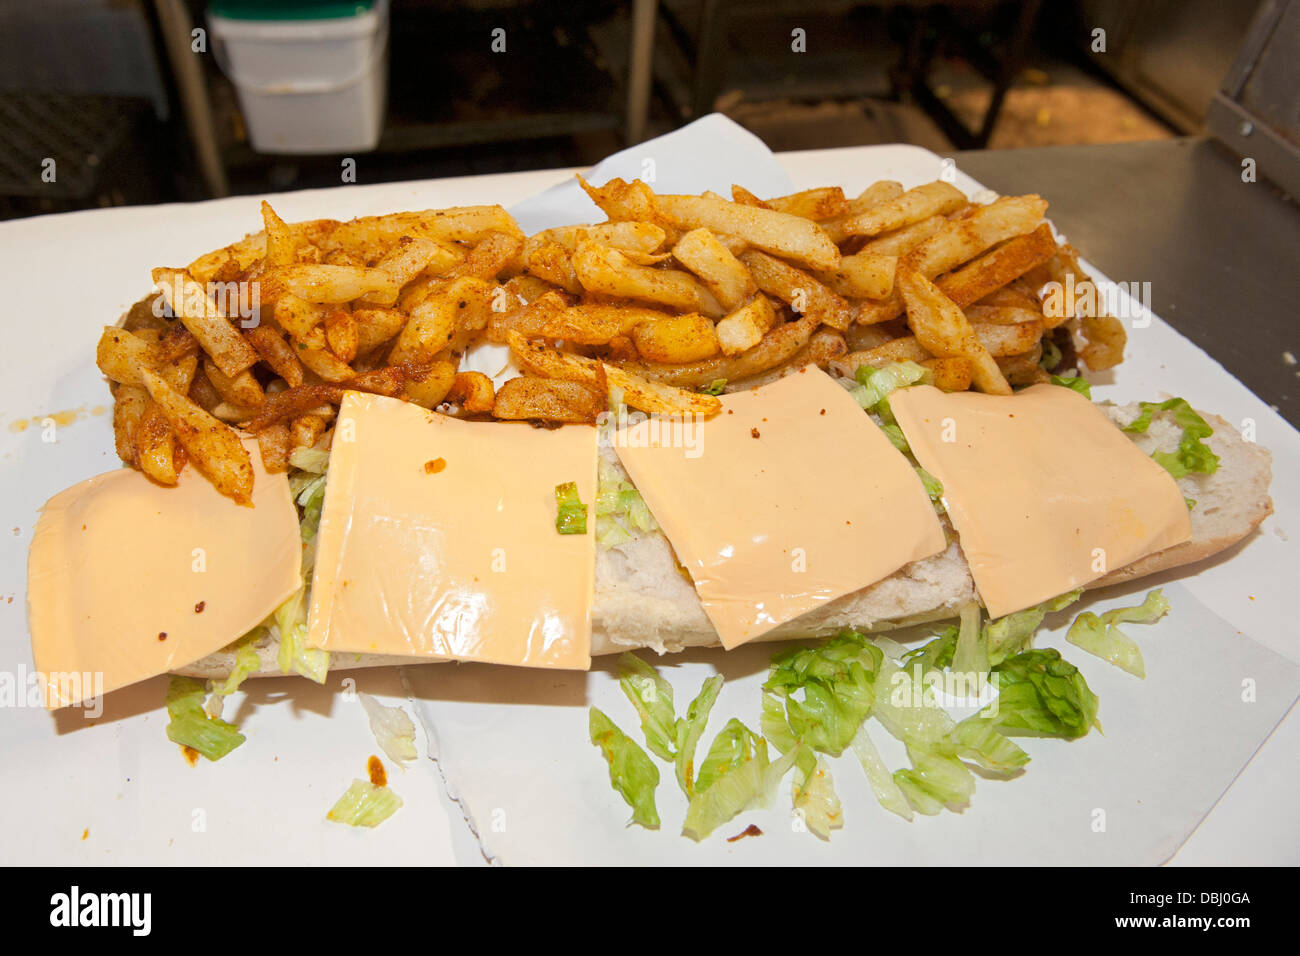 Full House gatsby sandwich being prepared at the Golden Dish take away in Athlone, Cape Town, South Africa. - Stock Image